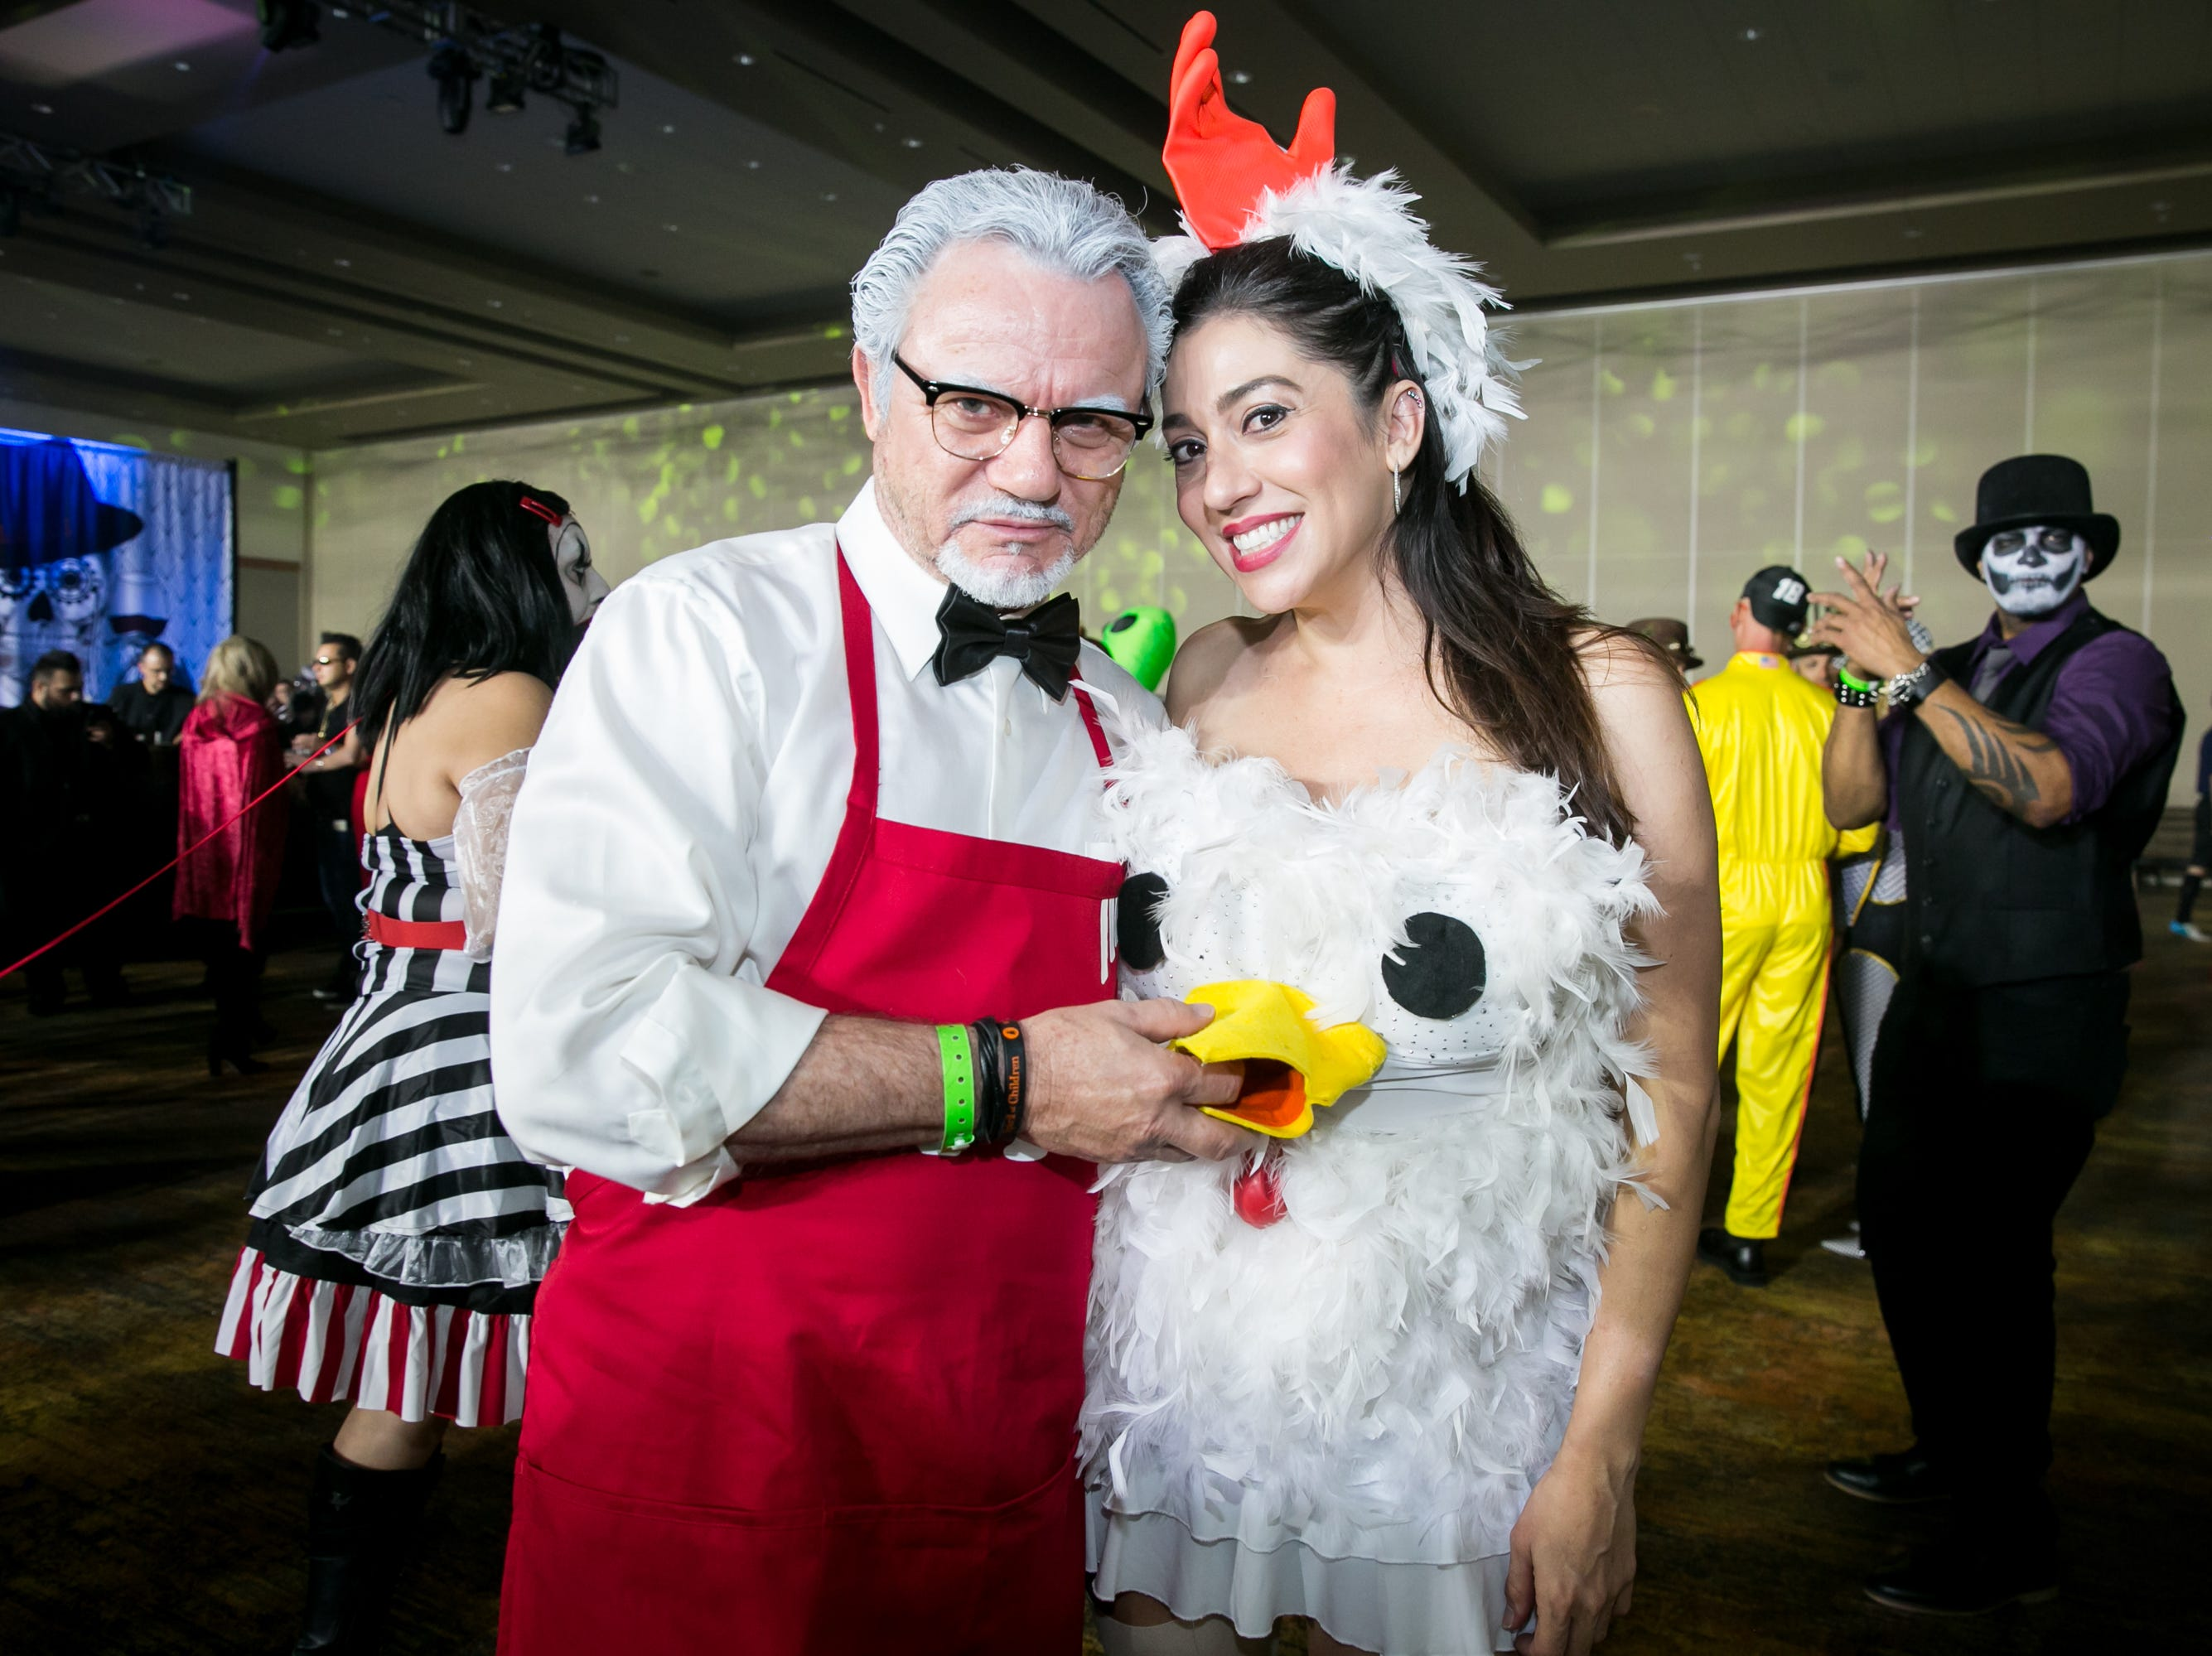 Some finger lickin' good costumes during Wicked Ball at Talking Stick Resort on Saturday, October 27, 2018.